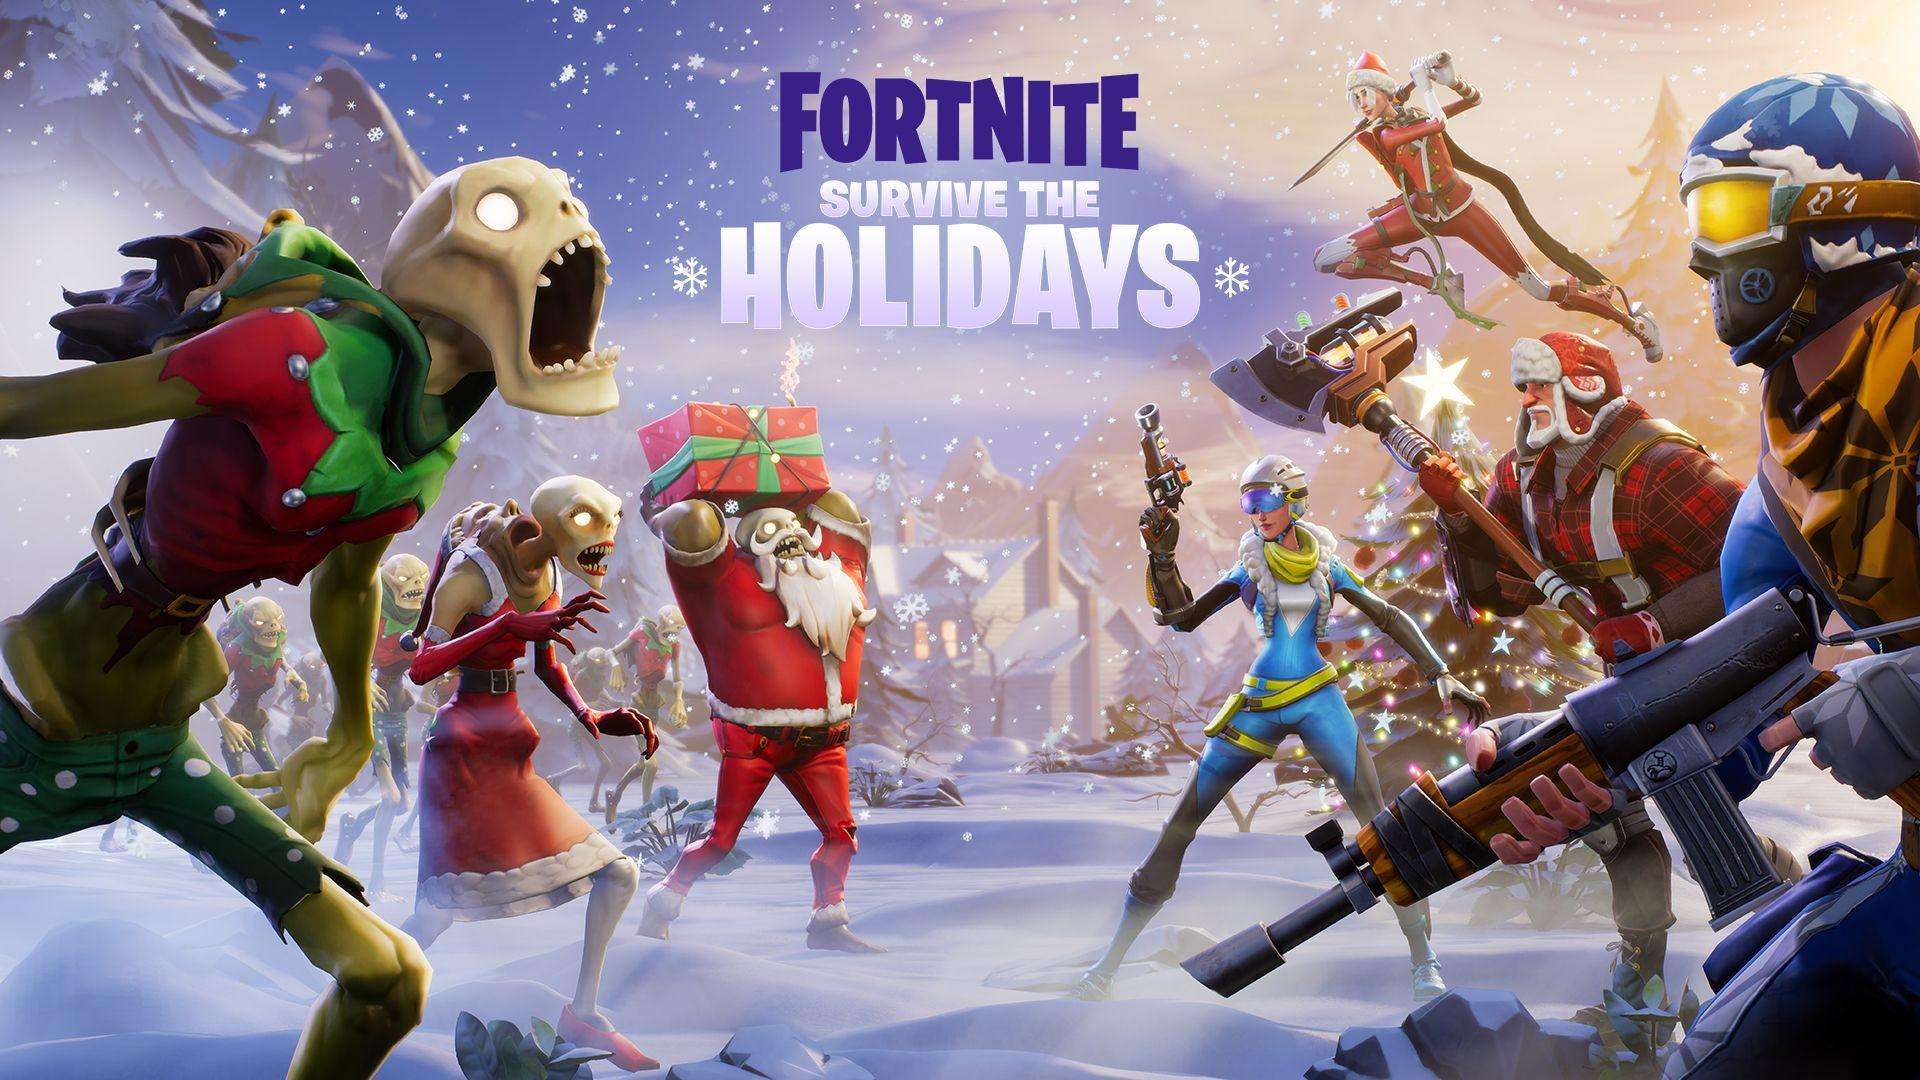 Fortnite Christmas Event Arrives, Along with Battle Passes